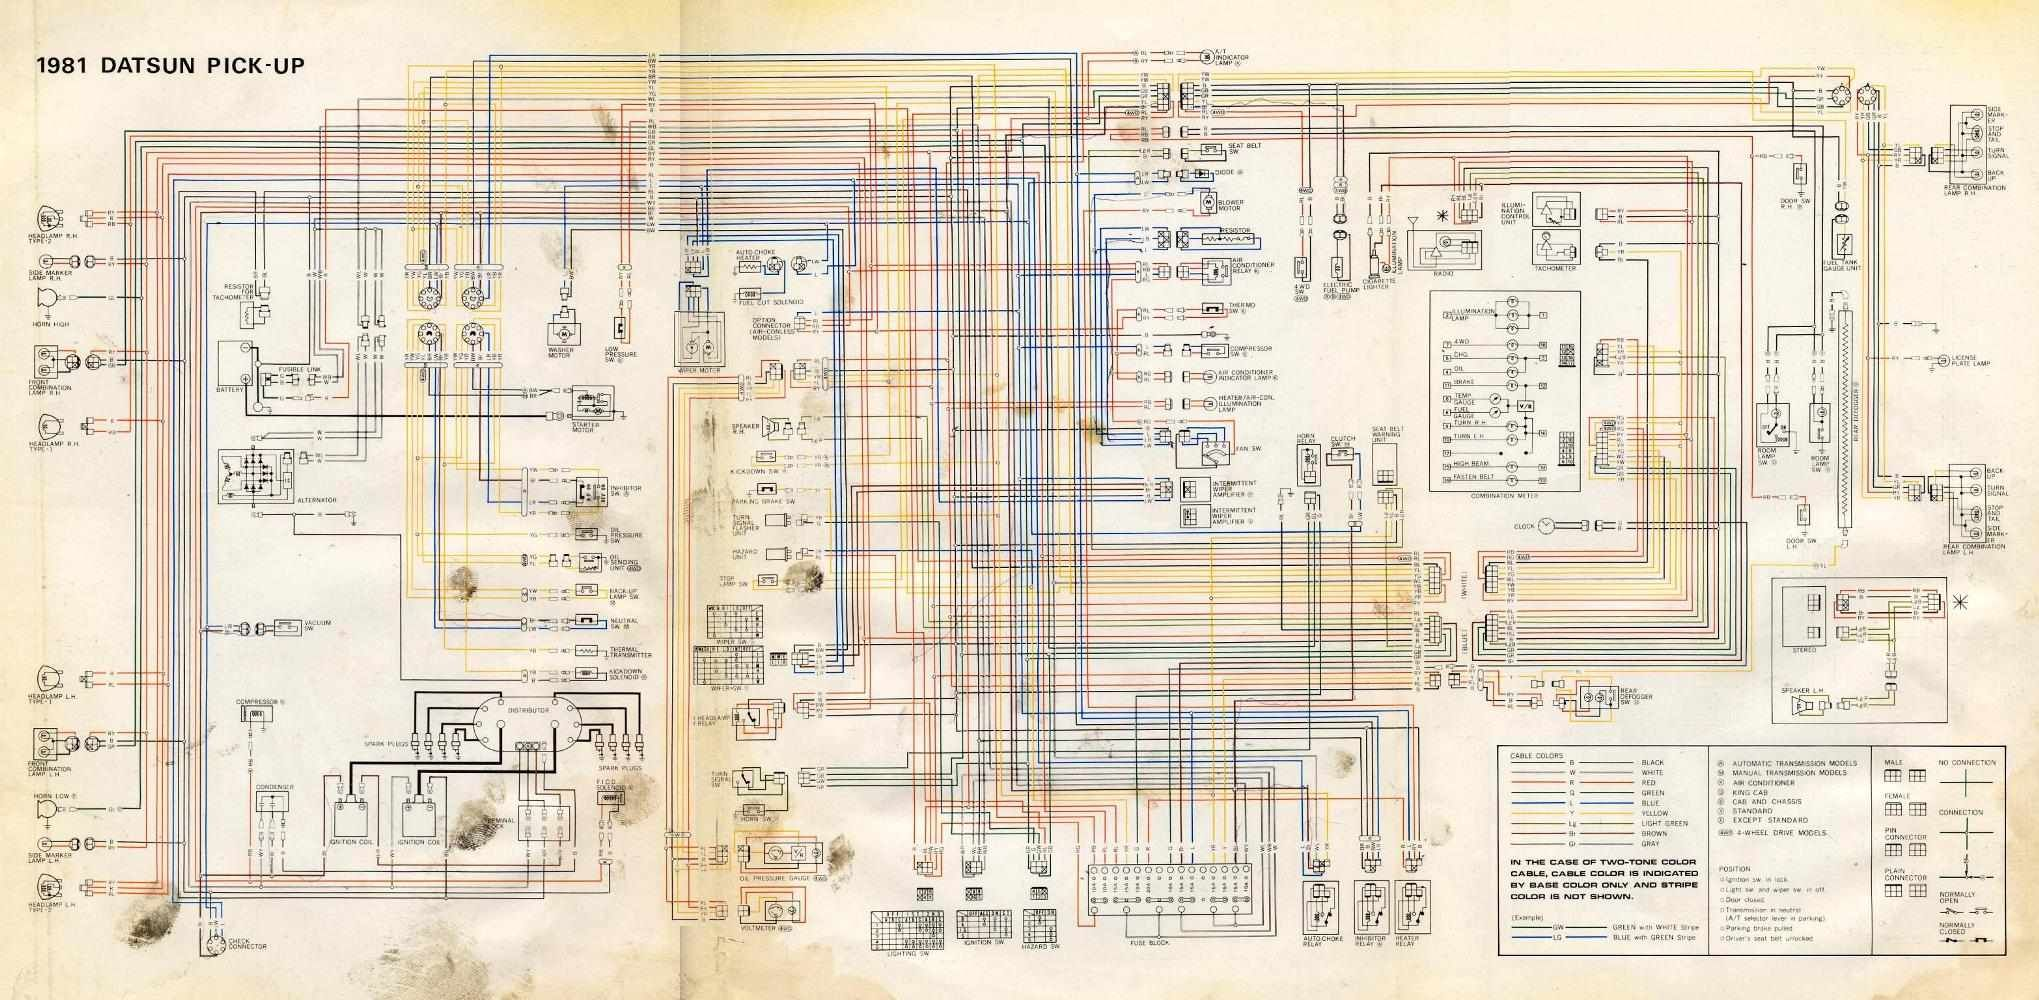 Willys Mb Wiring Diagram Toyota Celica At 1977 Datsun 280Z